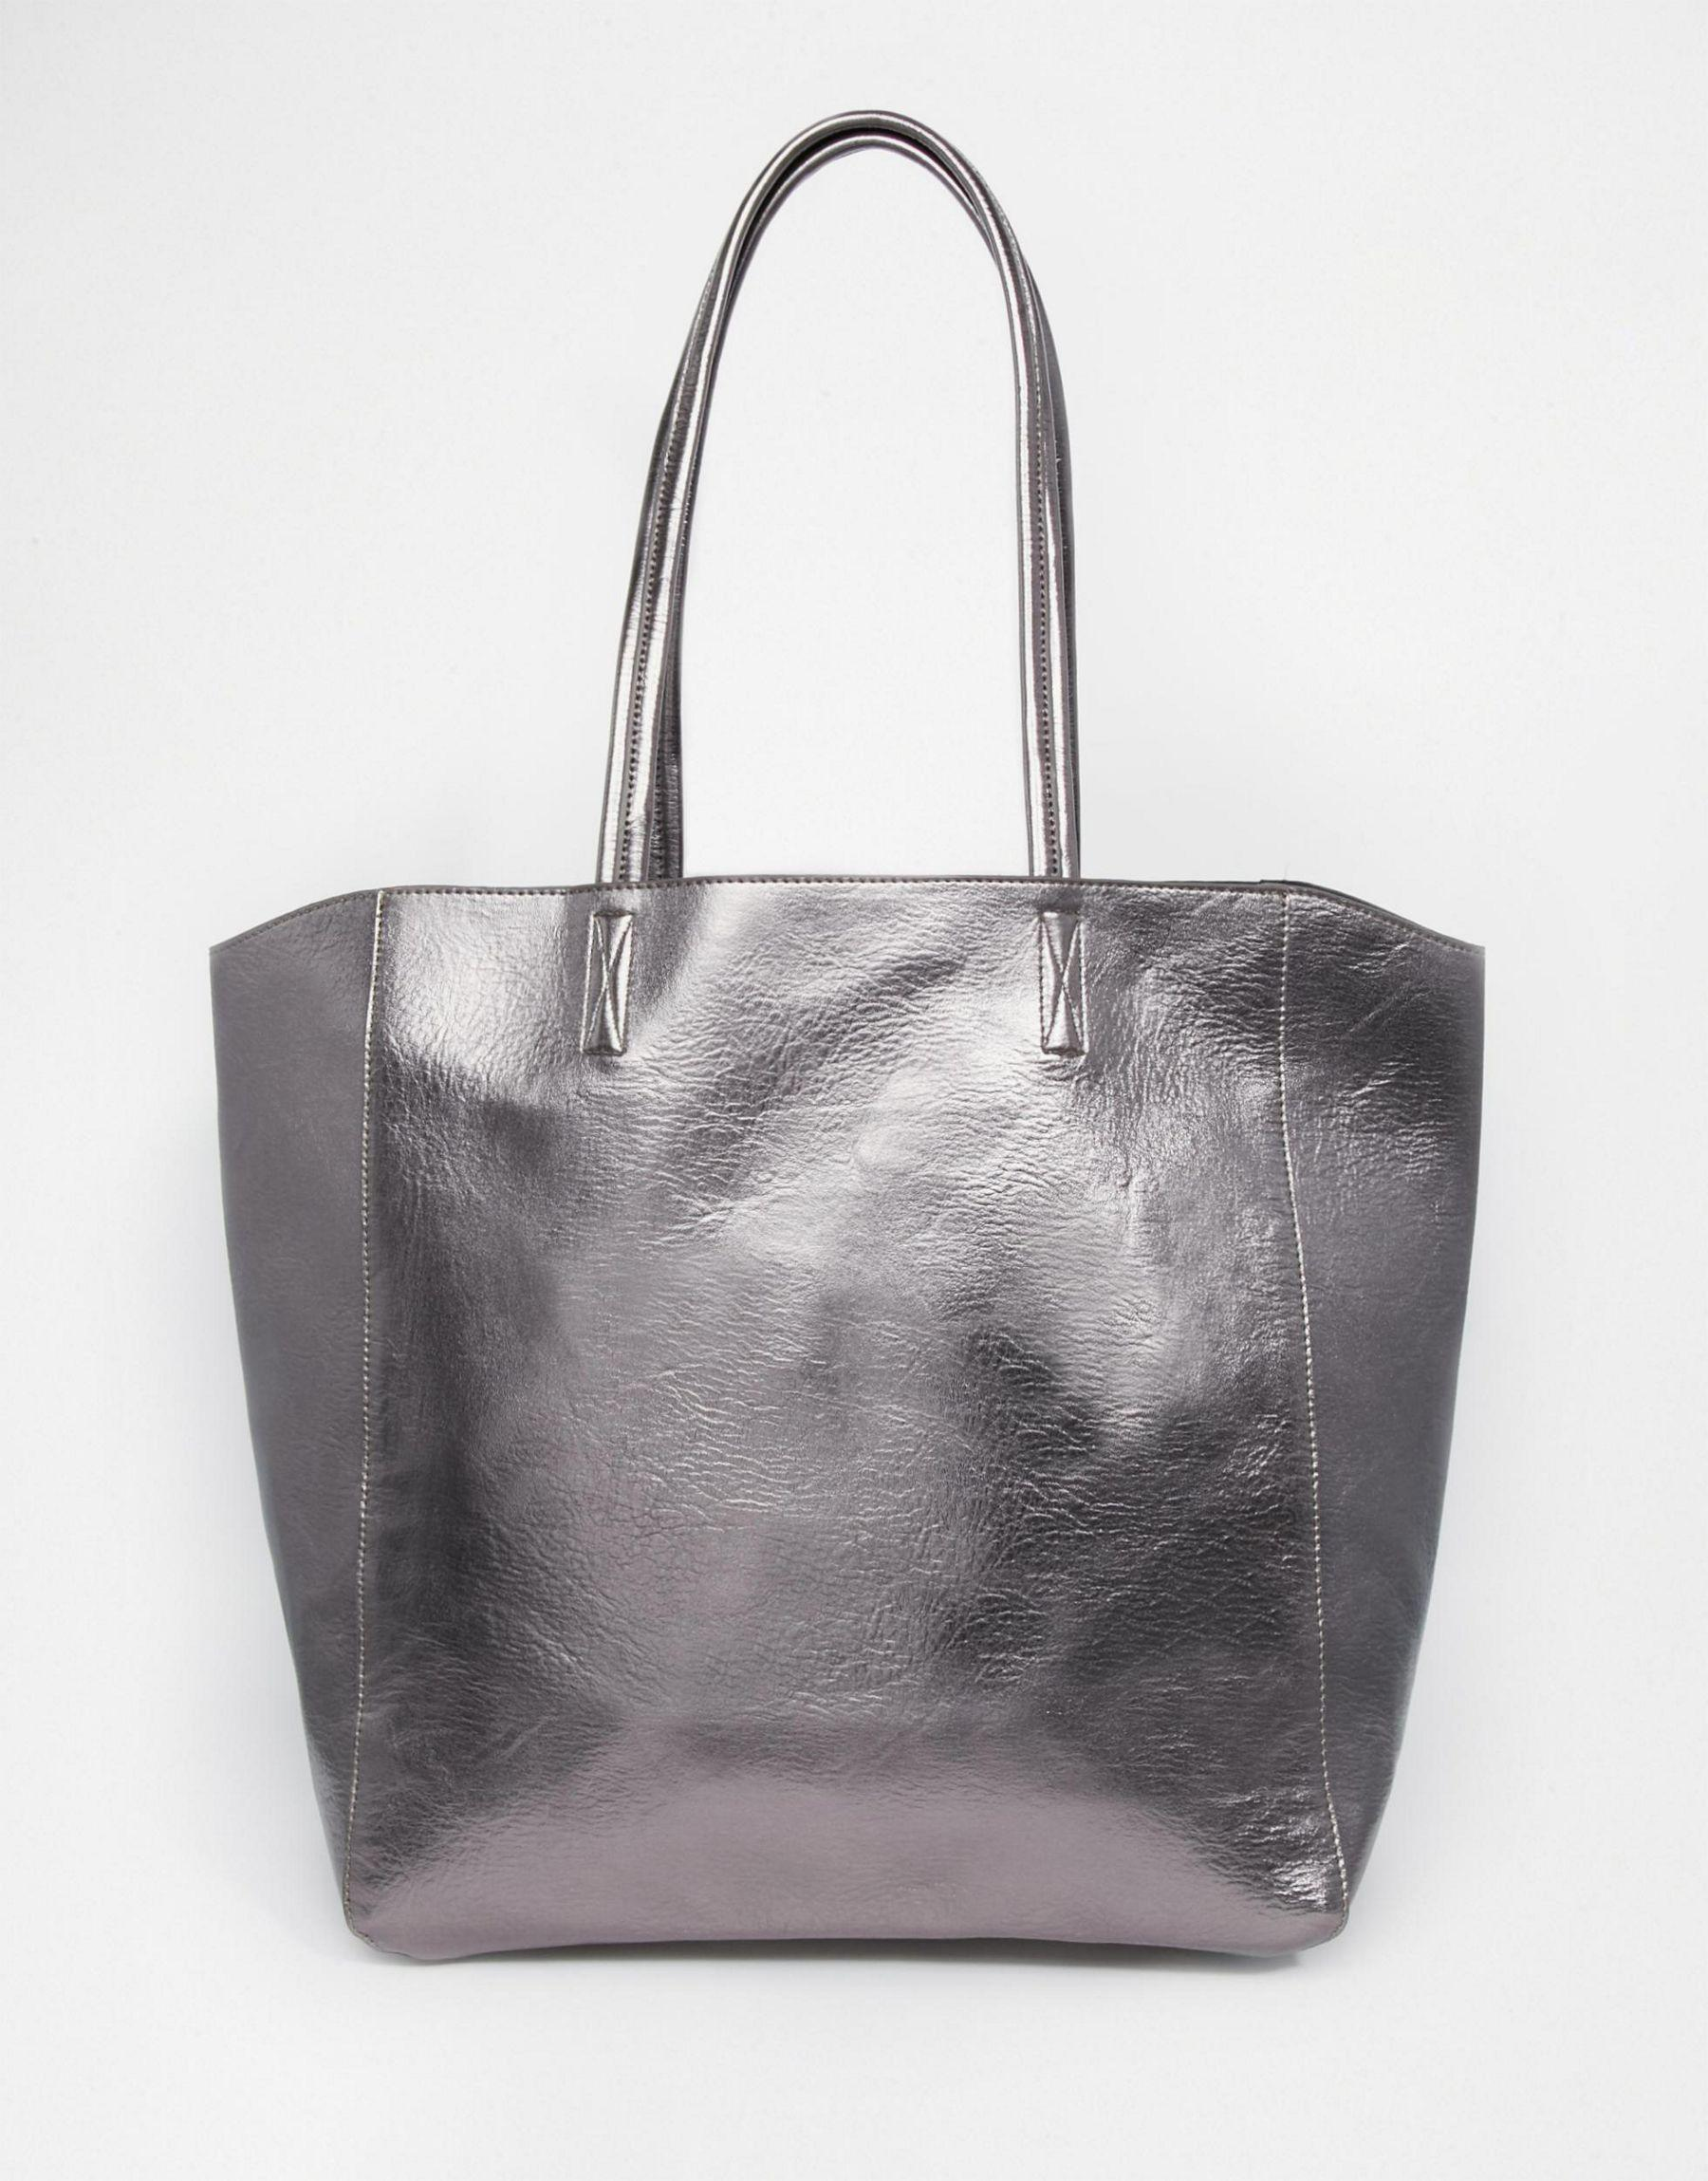 Asos Bags Metallic Shopper Bag Pewter - Purses